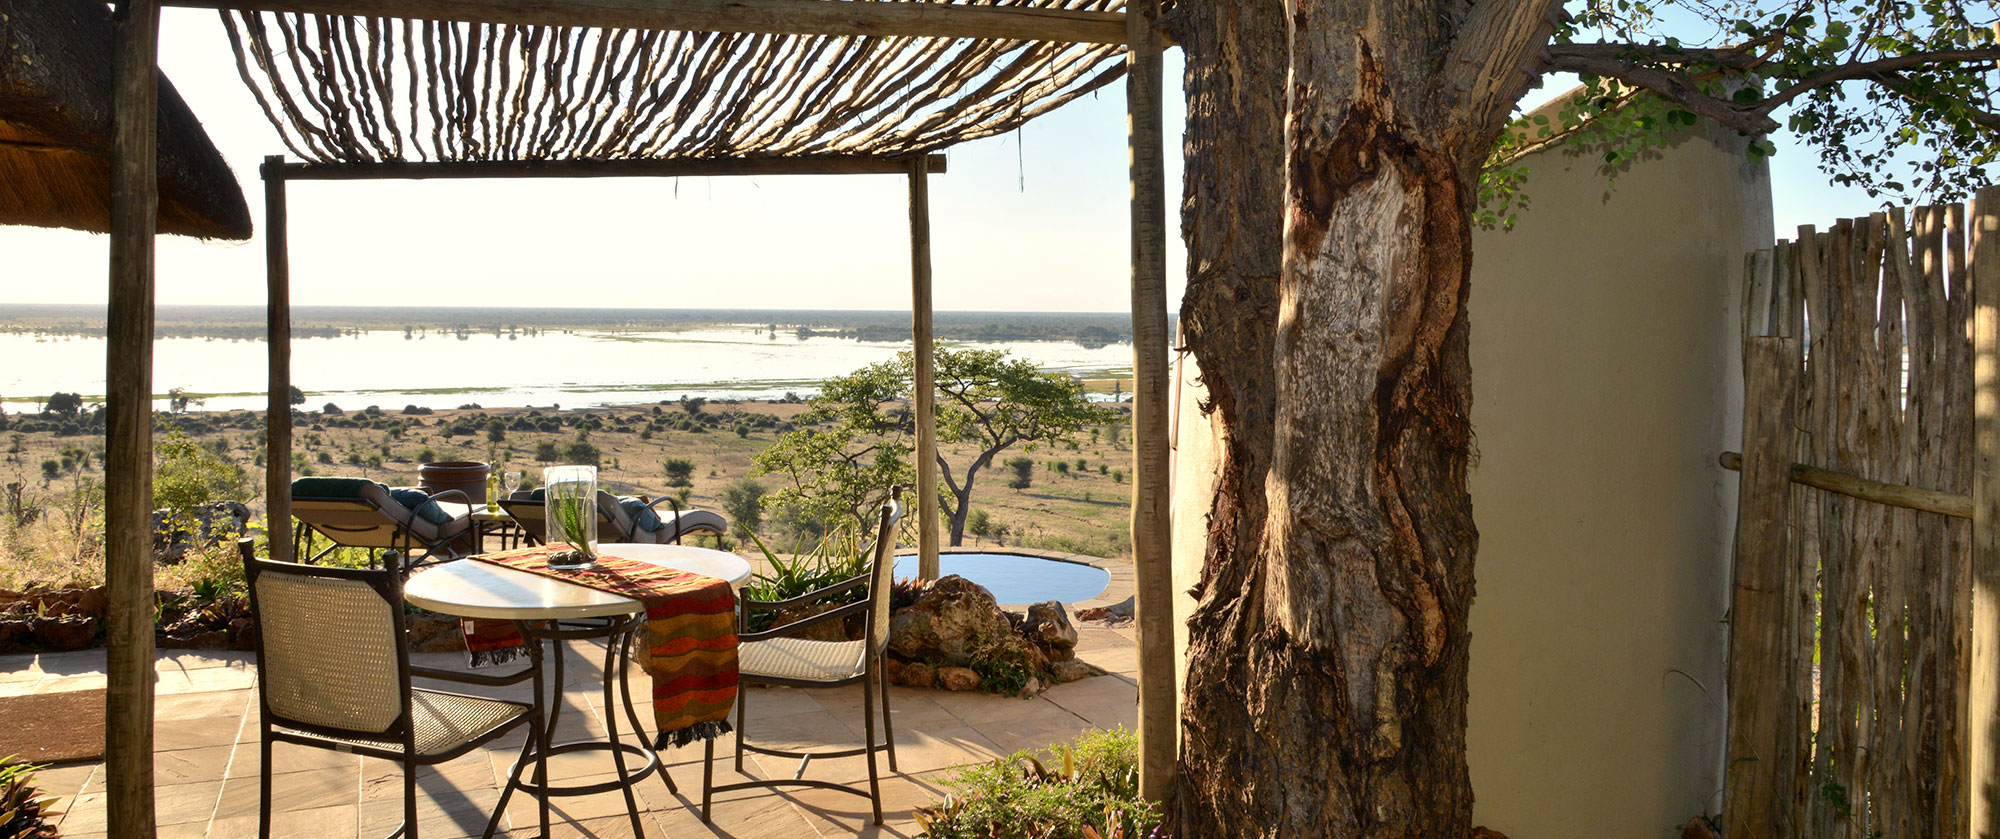 Ngoma Safari Lodge - Botswana Chobe National Park